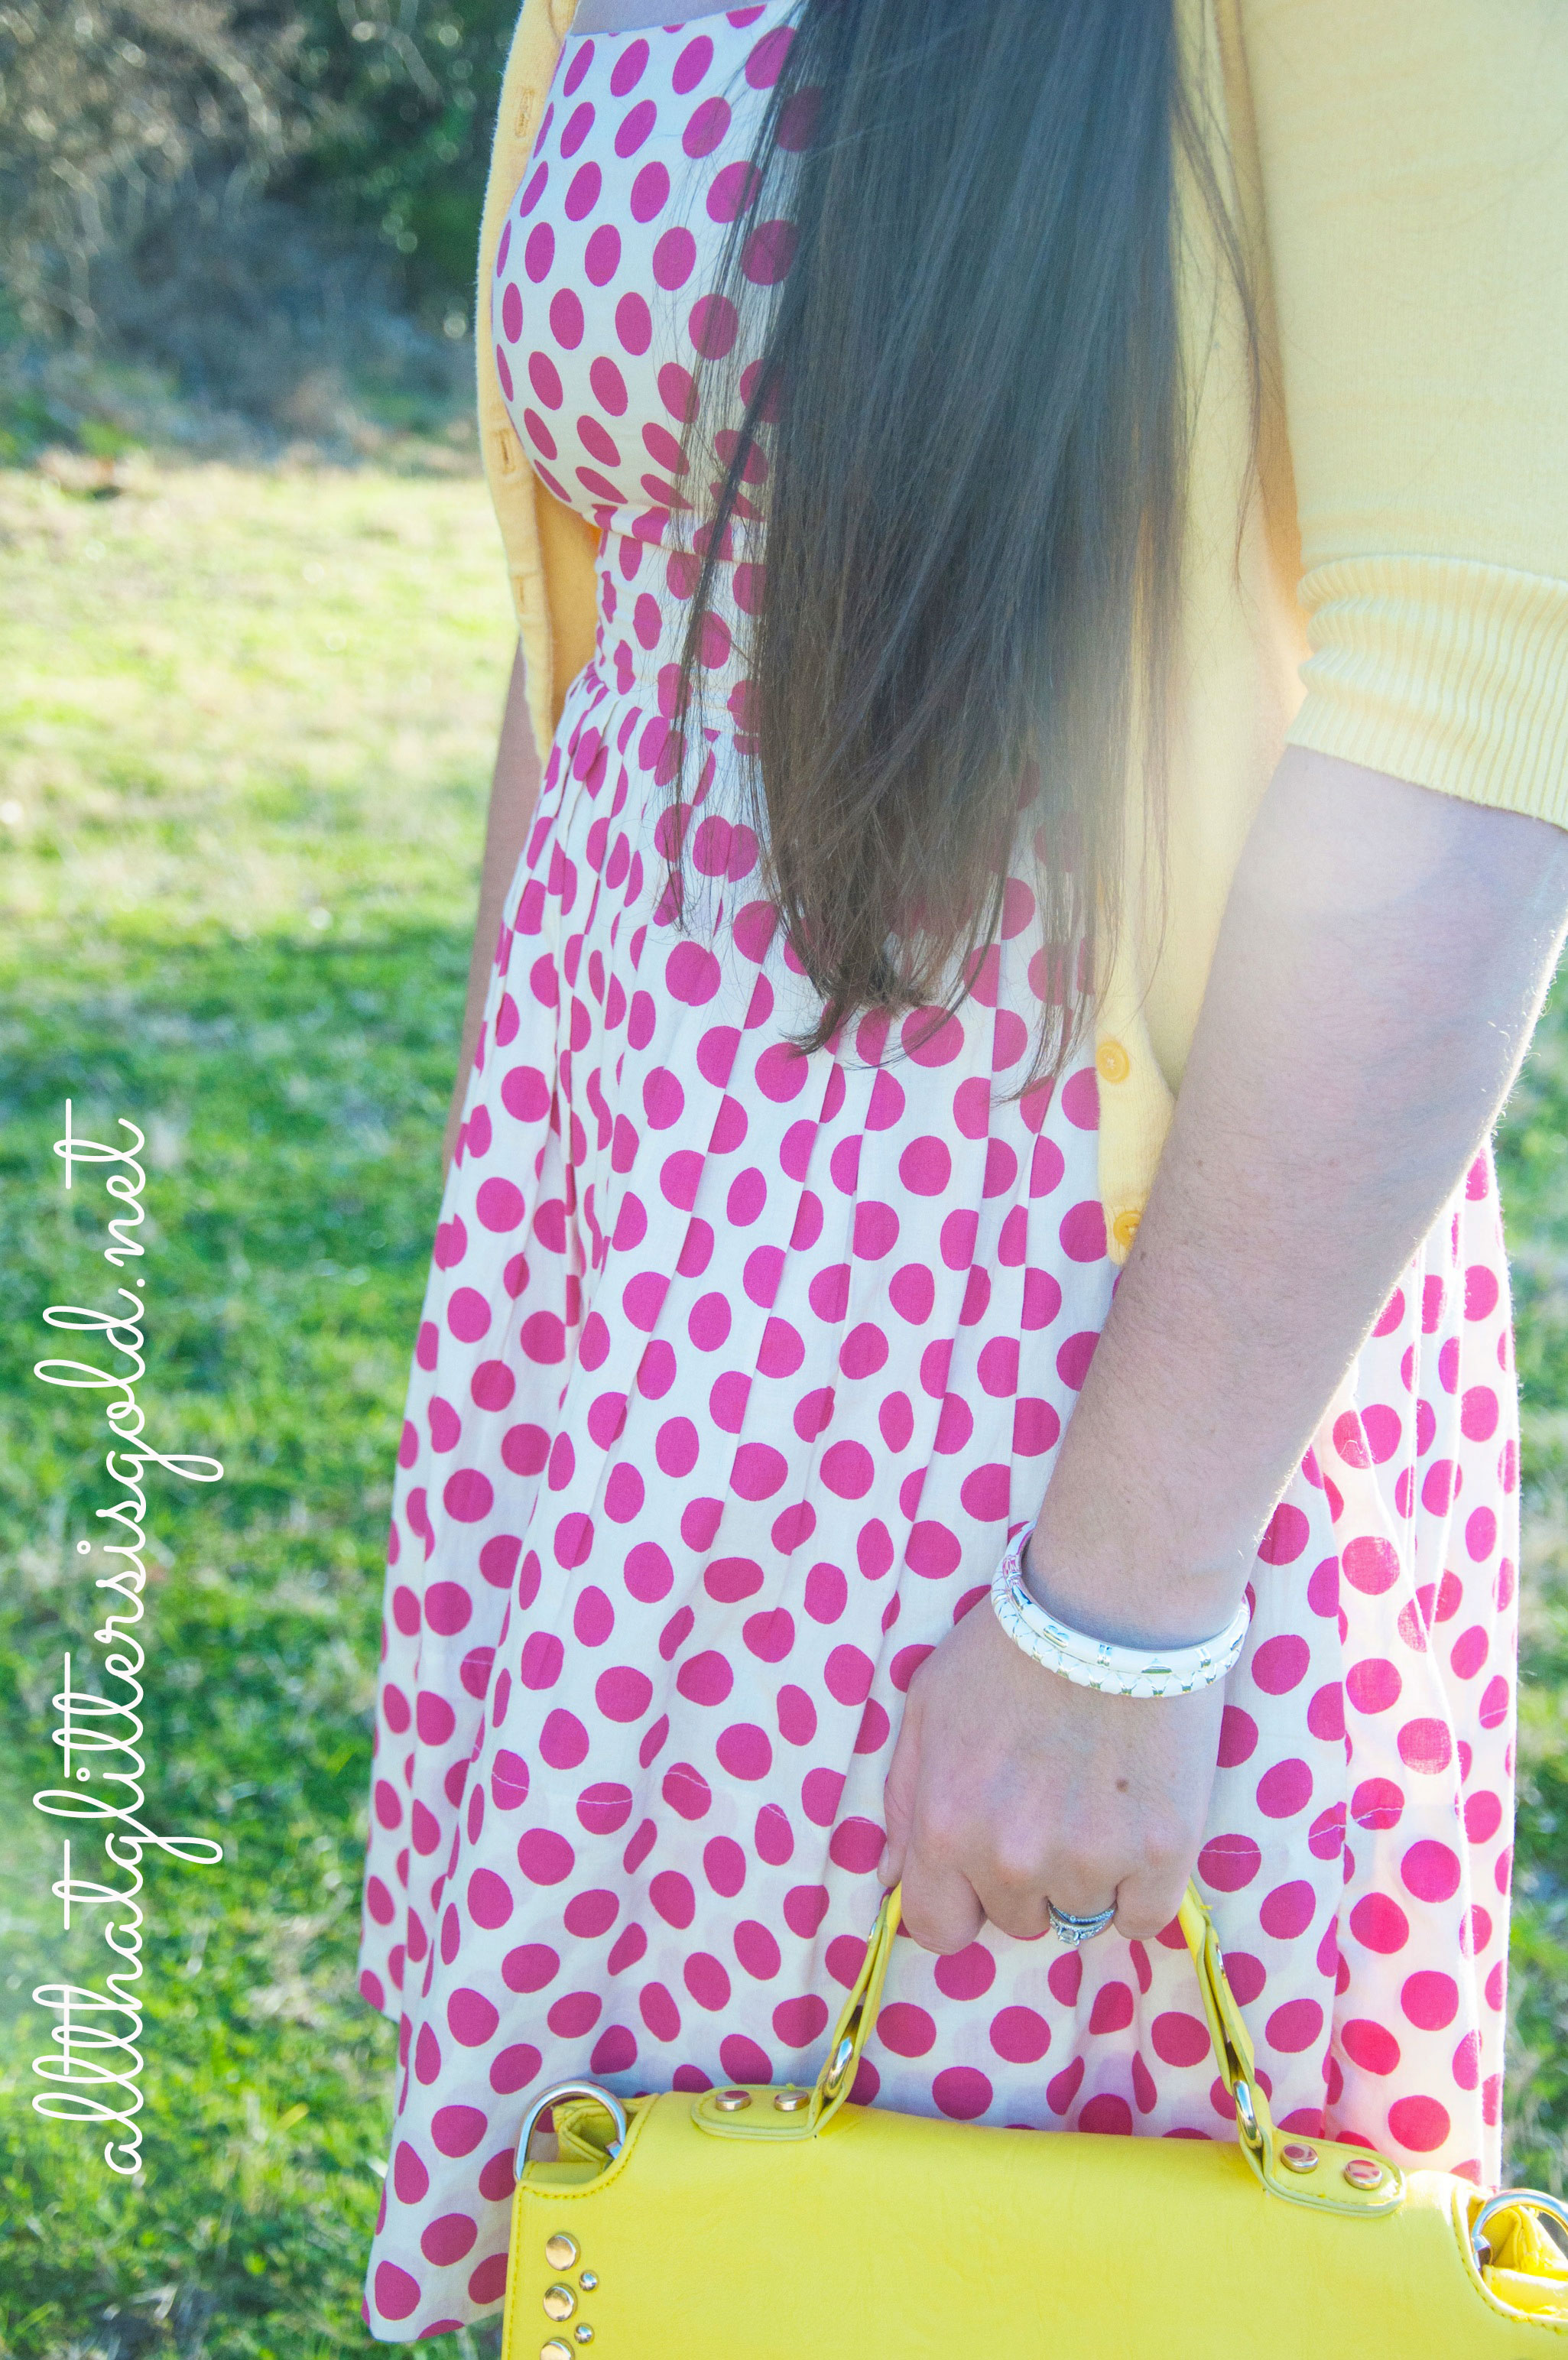 Pink polka dots and Yellow